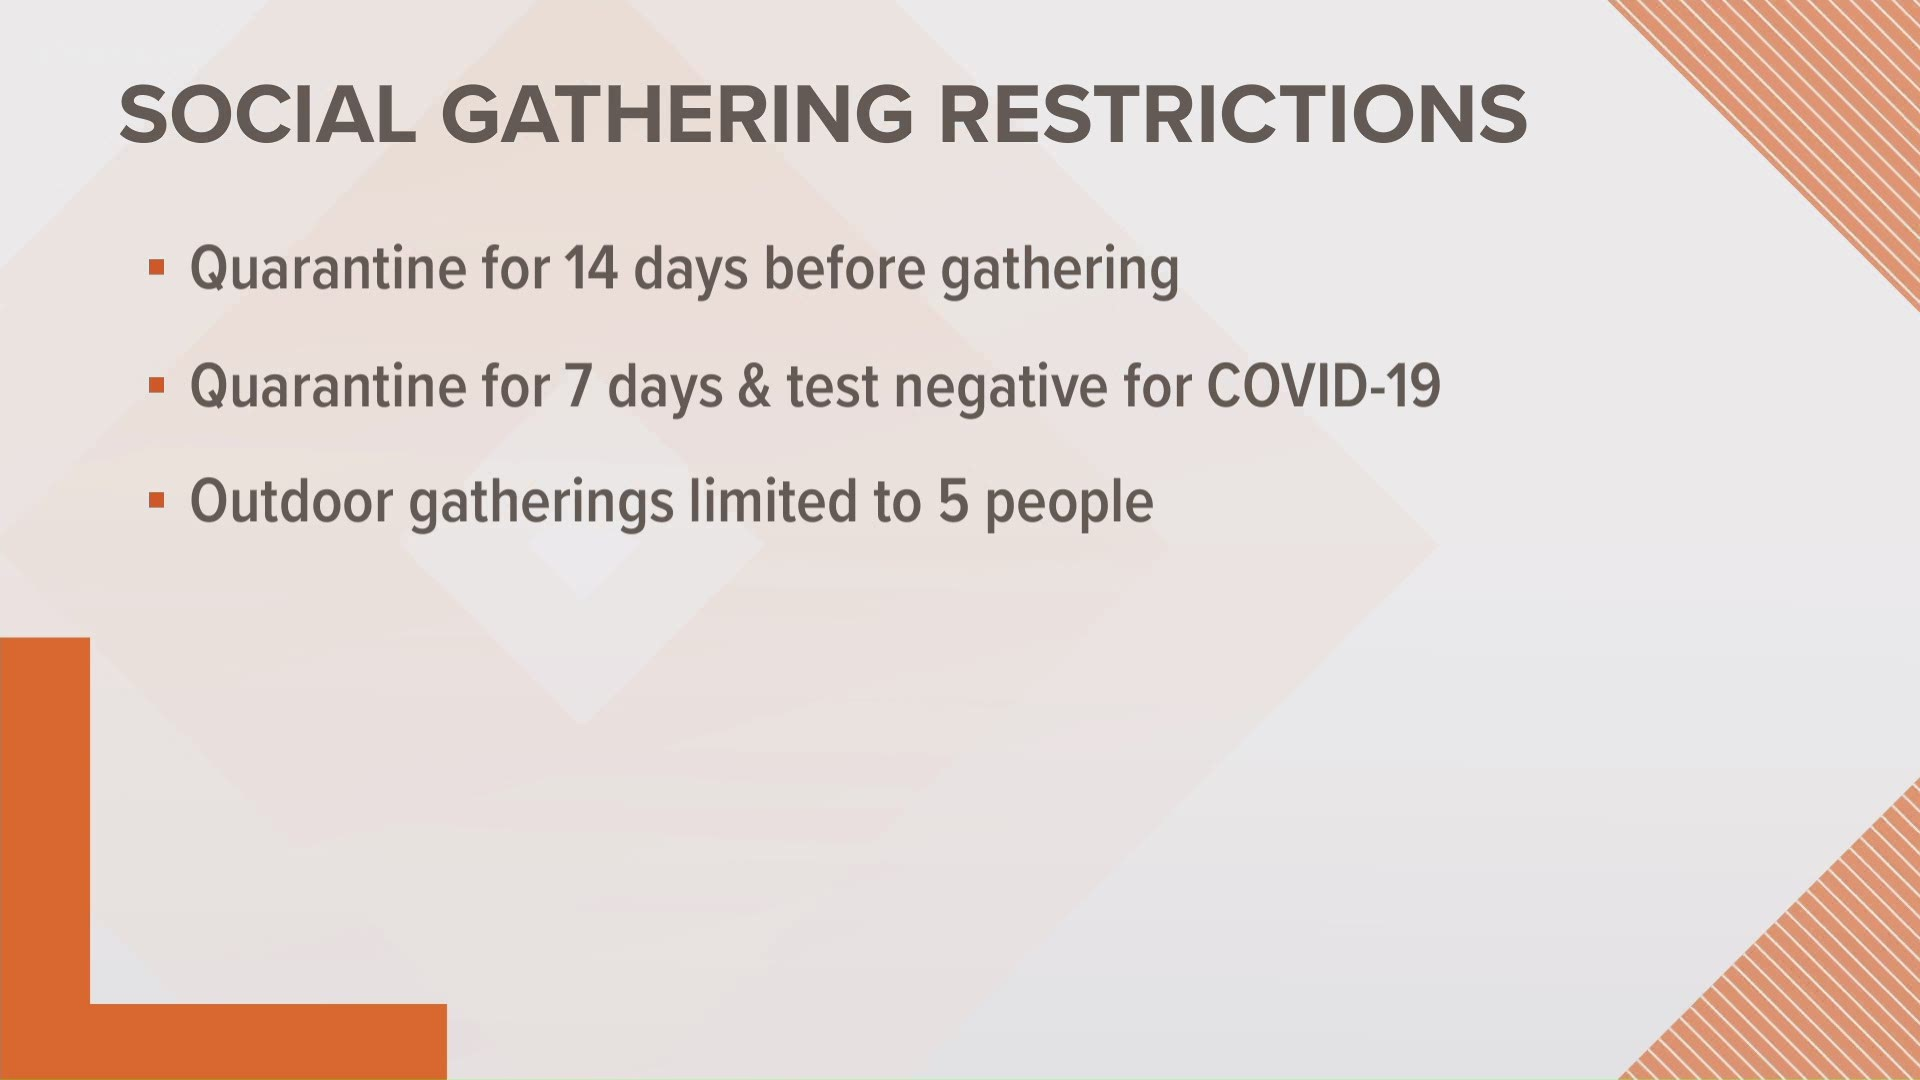 New Covid 19 Restrictions In Effect For Washington Stores Restaurants And Social Gatherings 10tv Com